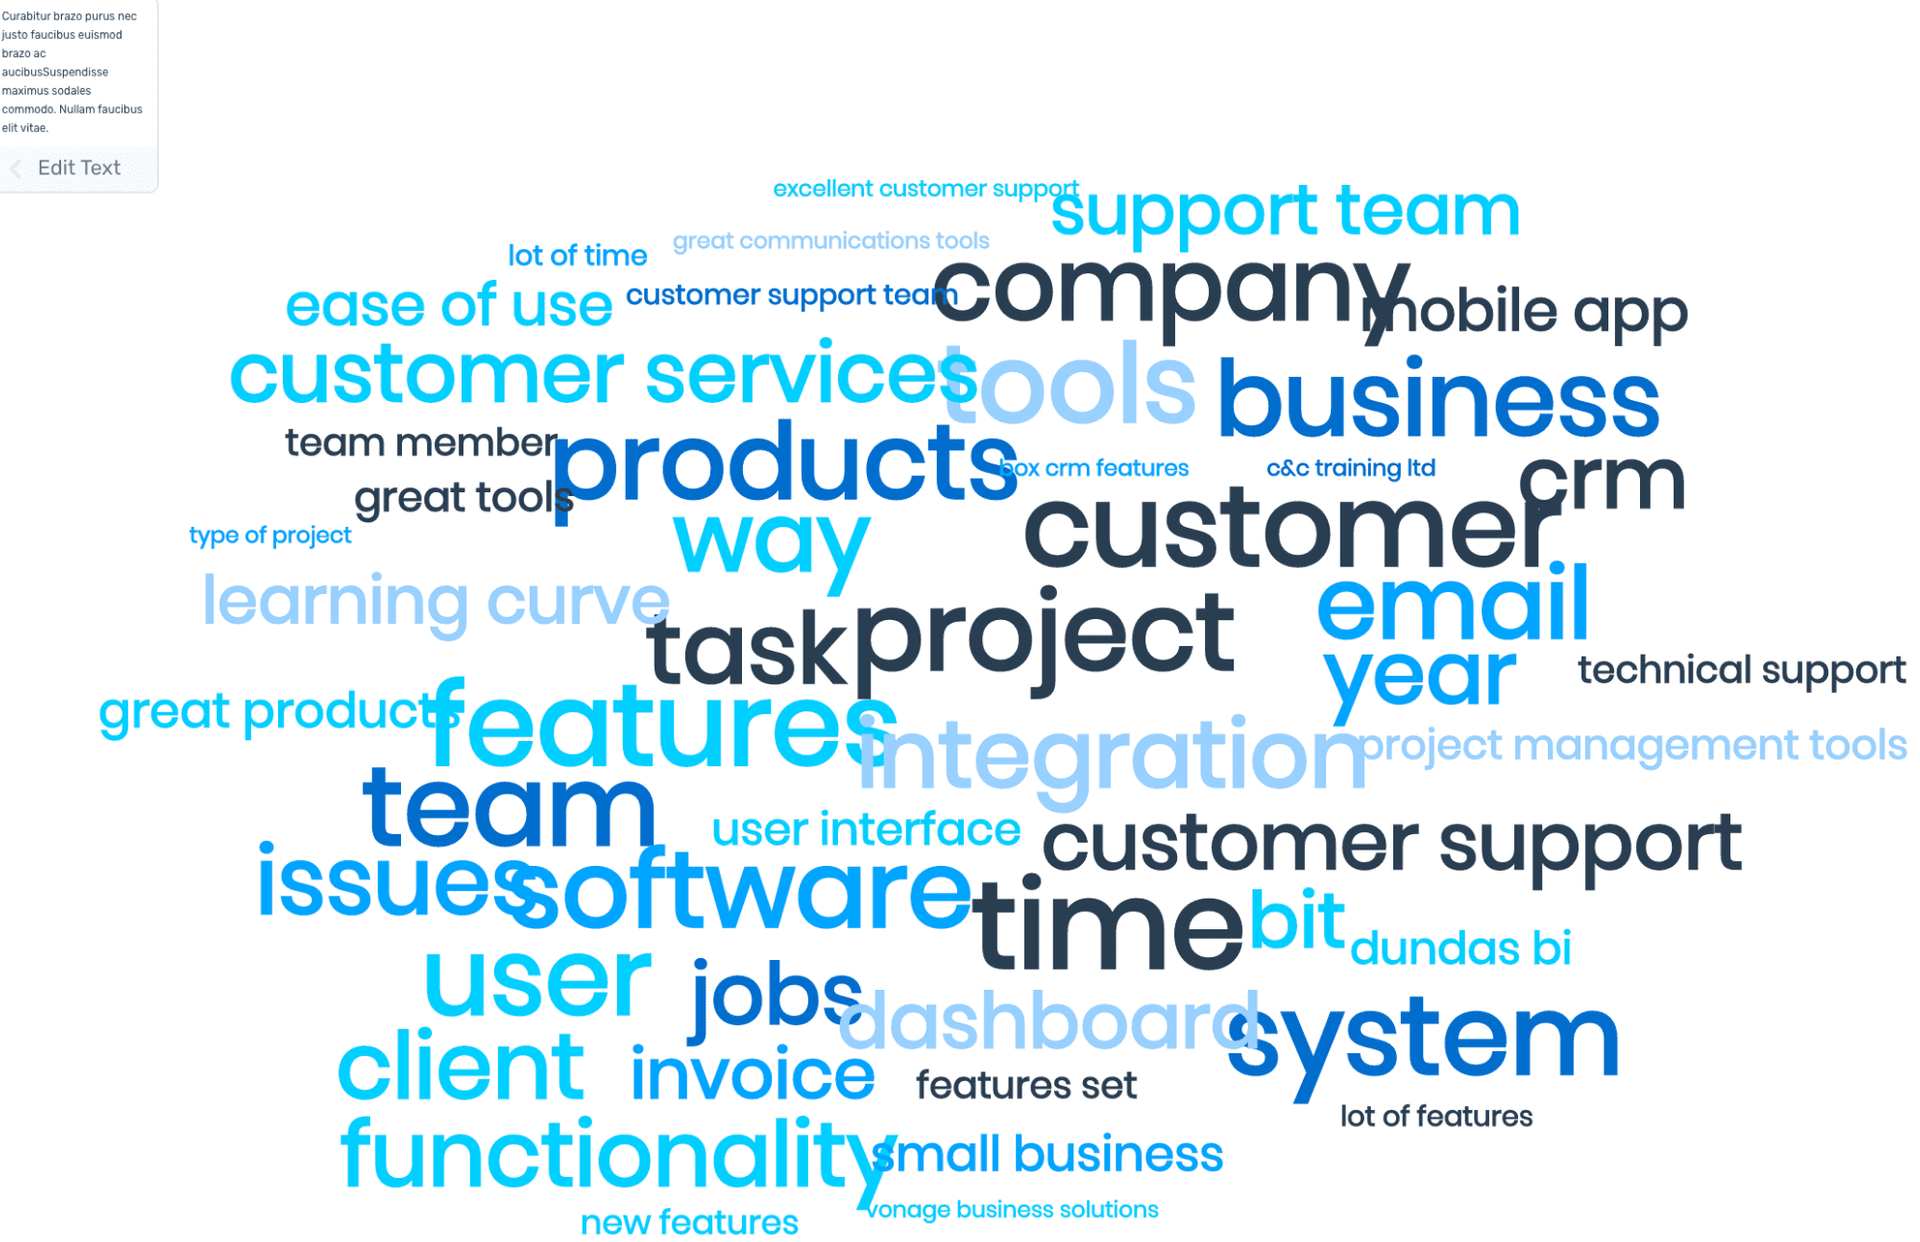 An example of a word cloud from SaaS software review data.